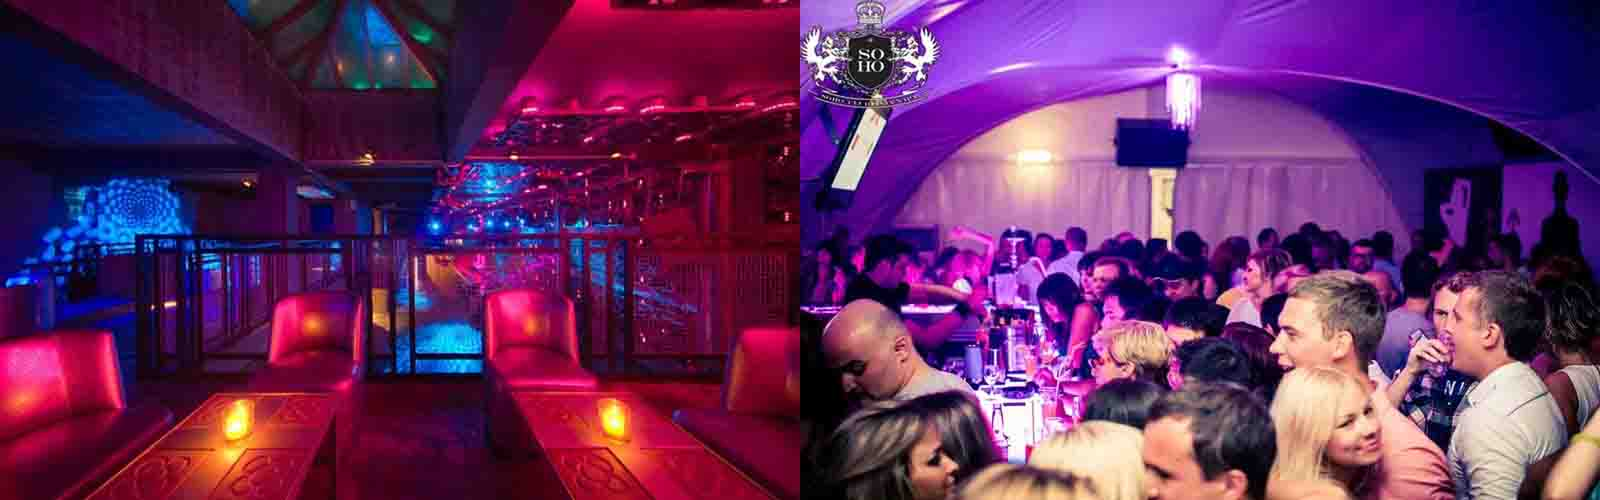 A great night out with your friends at Nightclub Soho